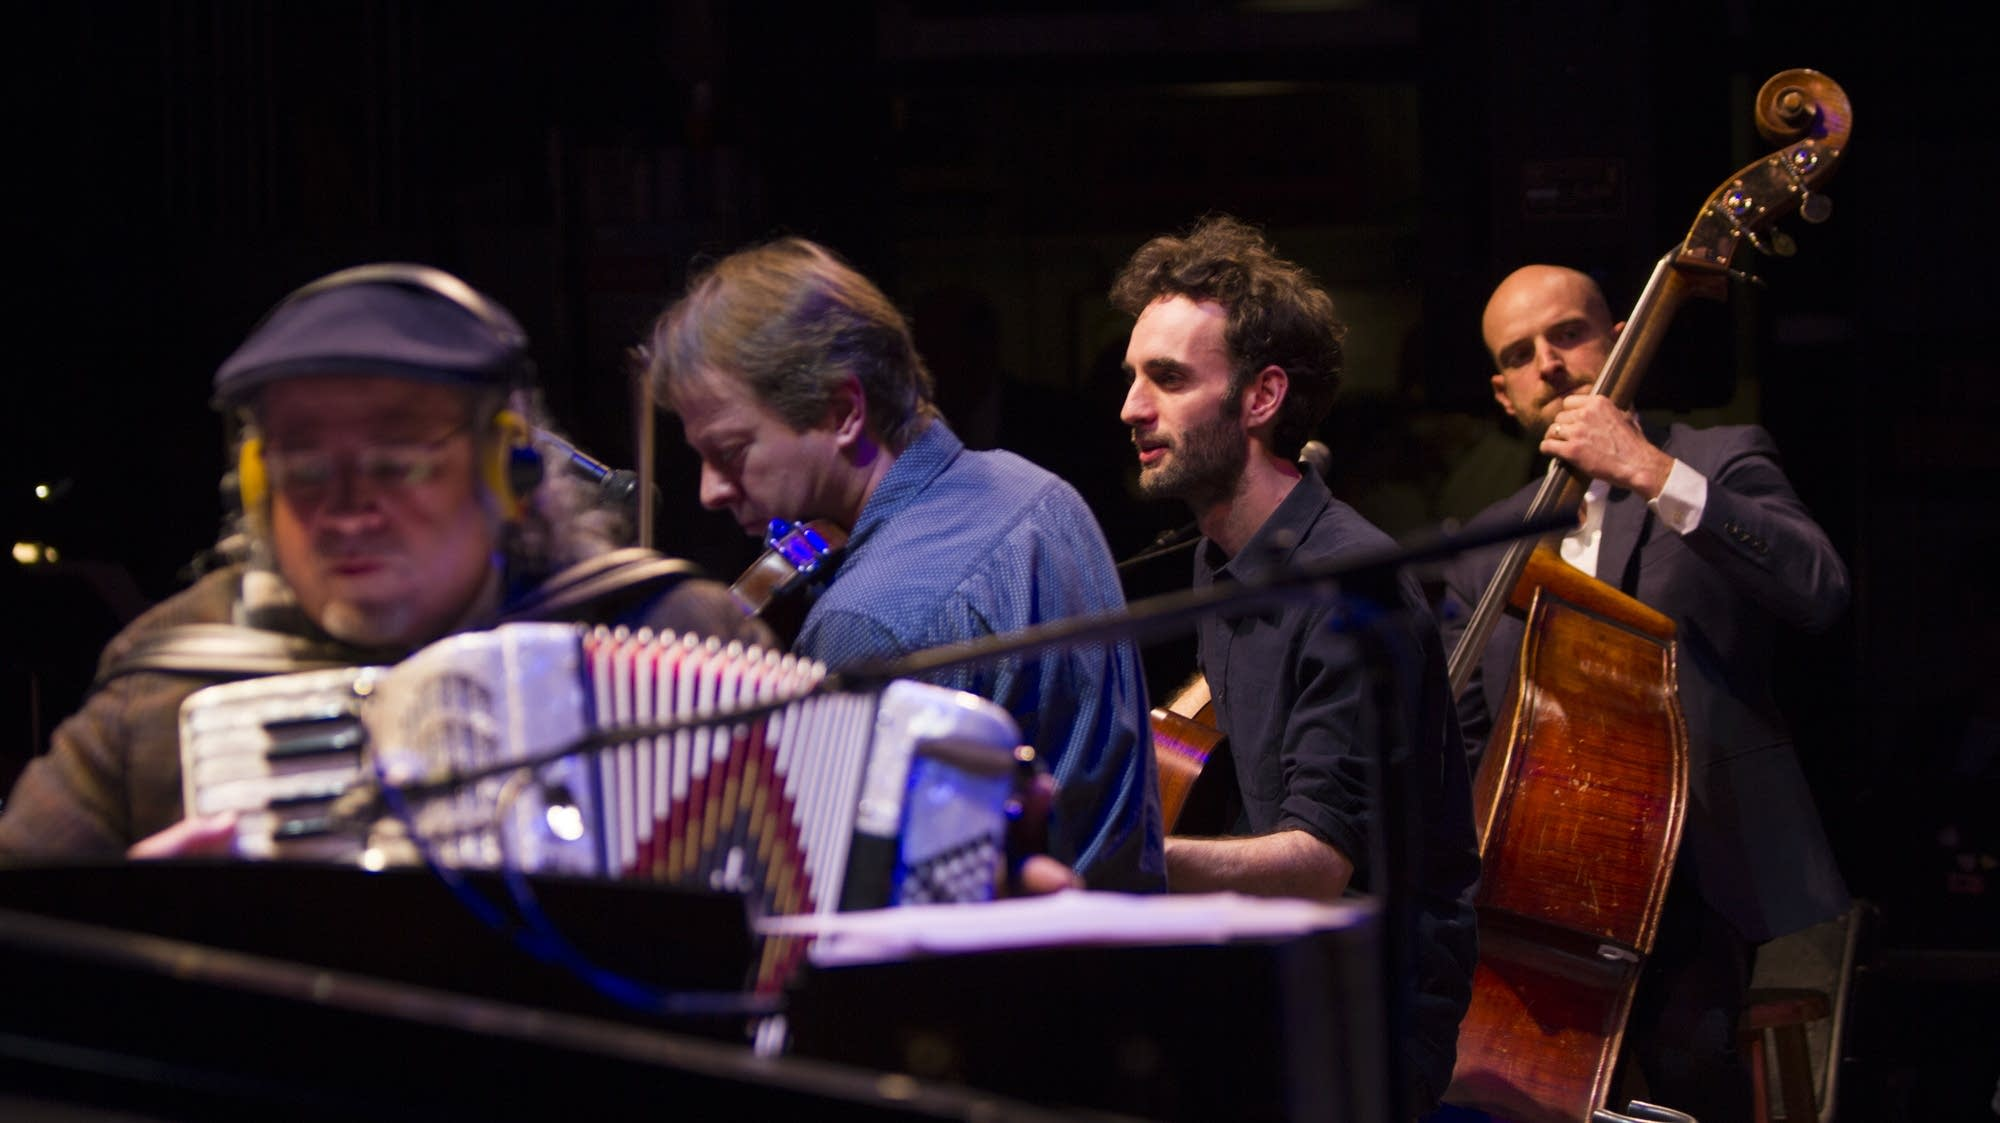 Rich Dworsky, Stuart Duncan, Julian Lage, and Alan Hampton